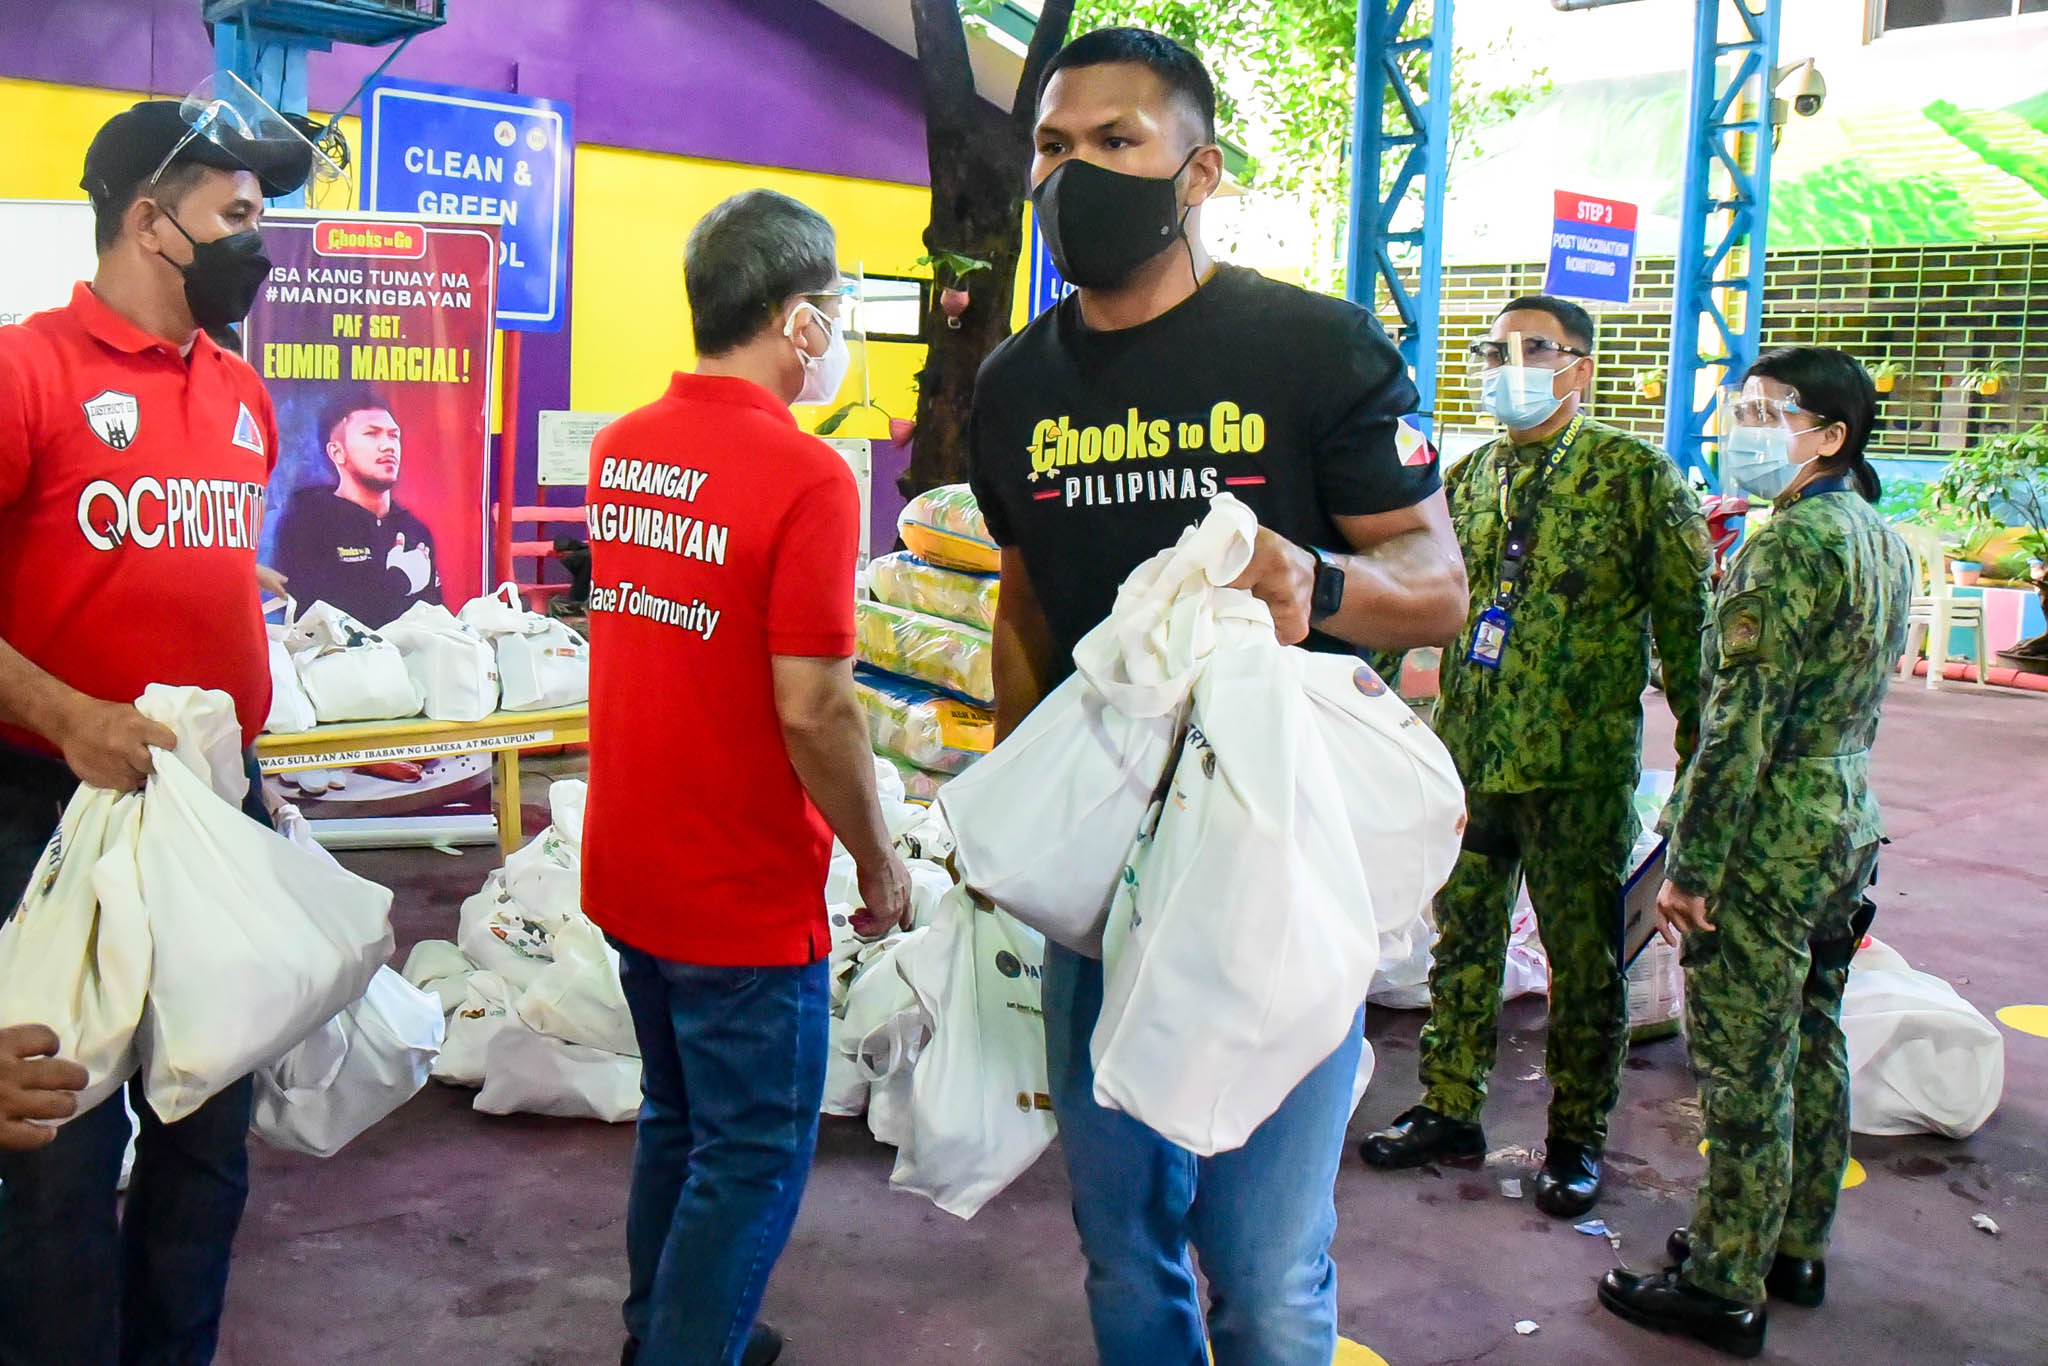 Chooks-to-Go-Eumir-Marcial-PAF-Community-Pantry-2 Marcial, Chooks-to-Go give back through PAF community pantry Boxing News  - philippine sports news